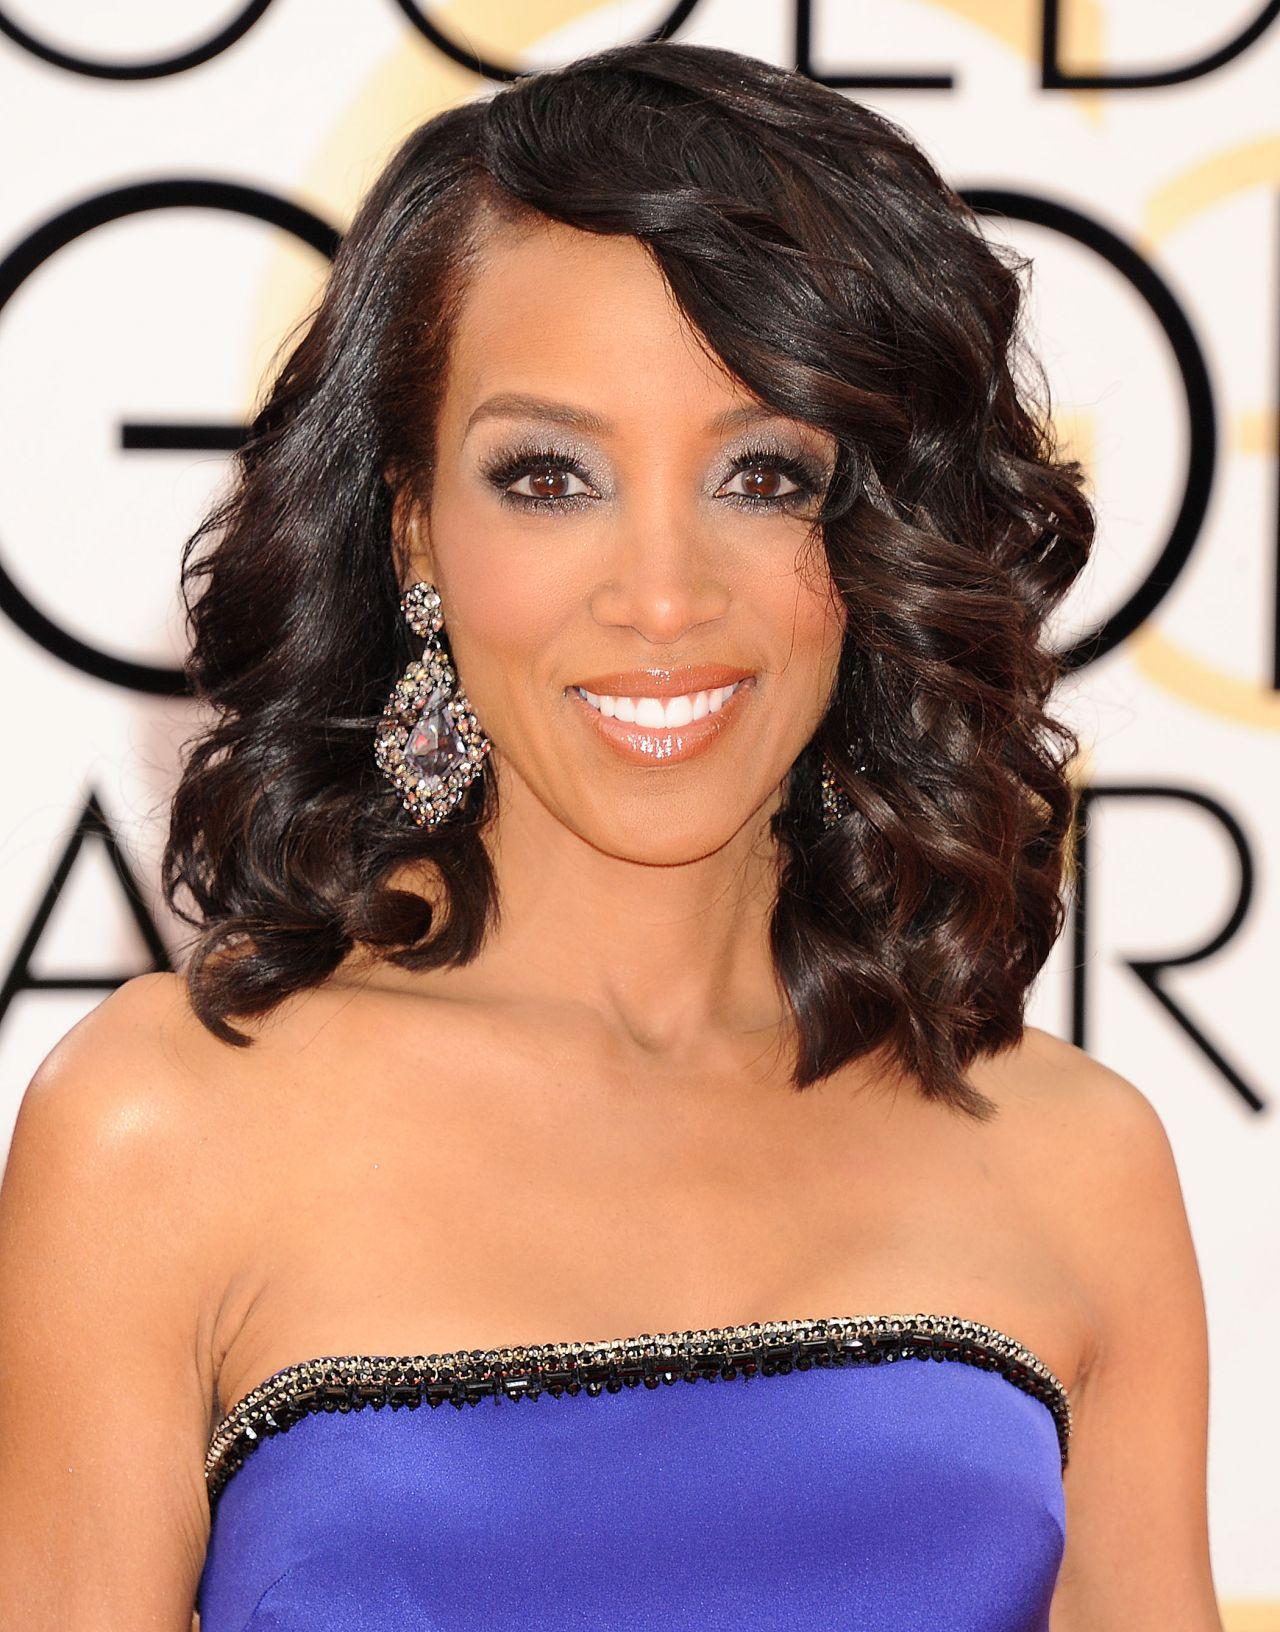 Shaun Robinson at Golden Globe Awards 2014 - shaun-robinson-at-golden-globe-awards-2014_3